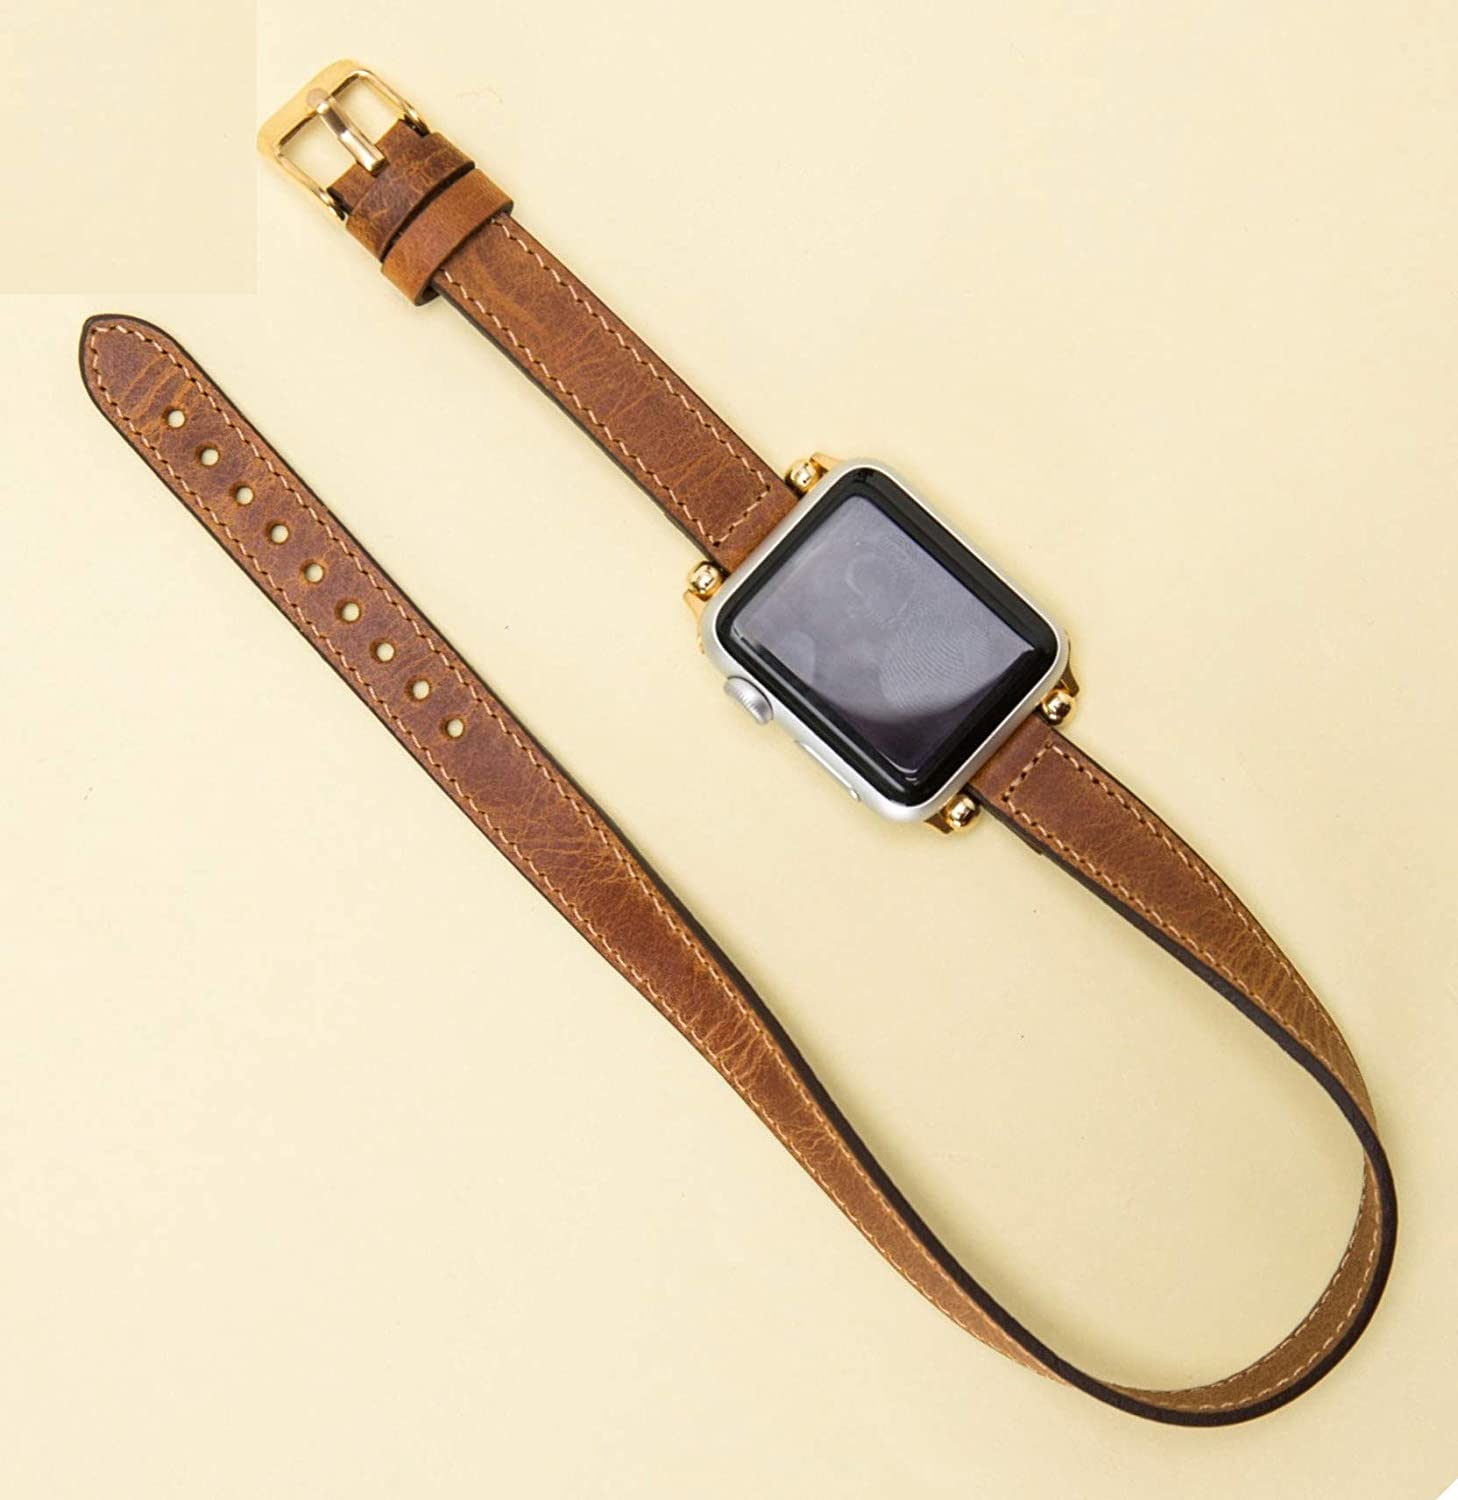 0ac60e689 Double Tour Apple Watch Leather Band for Women Thin iWatch Leather Band for  Women 38mm, 40mm, 42mm, 44mm Double Wrap Band Genuine Leather Apple Watch  Strap ...